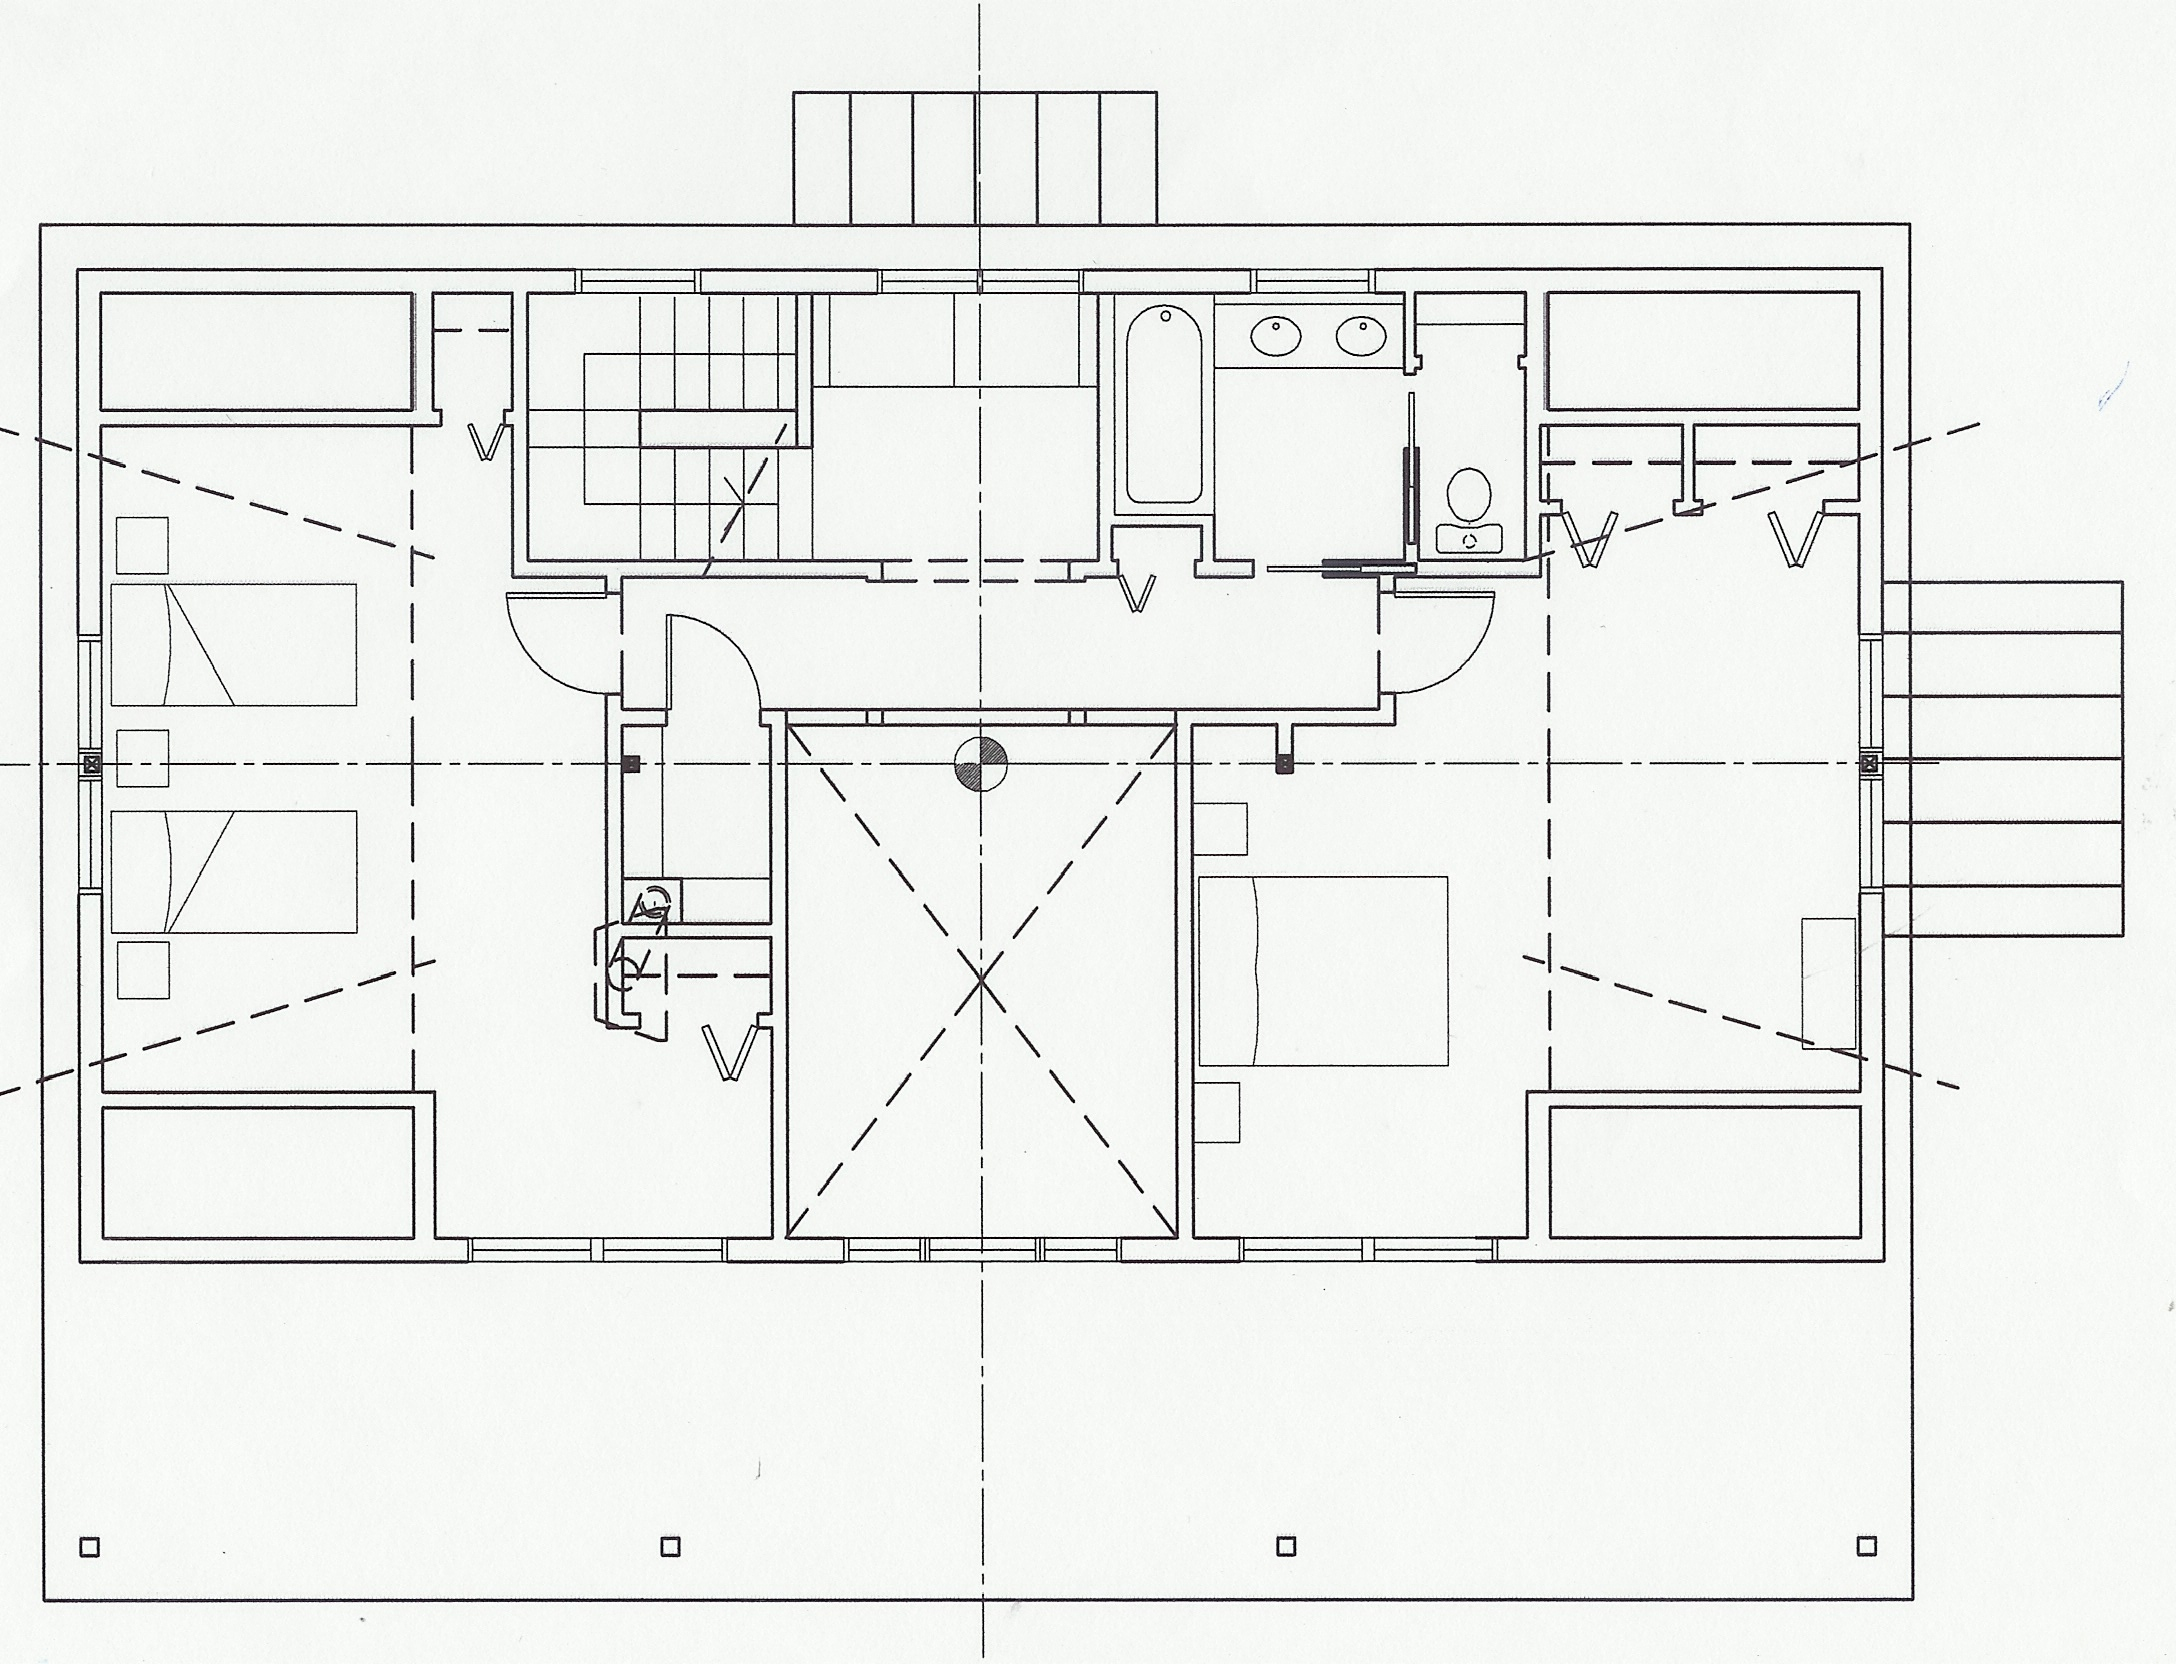 Second Floor Plan - two guest bedrooms, with shared bath. The X indicates the opening between the1st and 2nd floors.